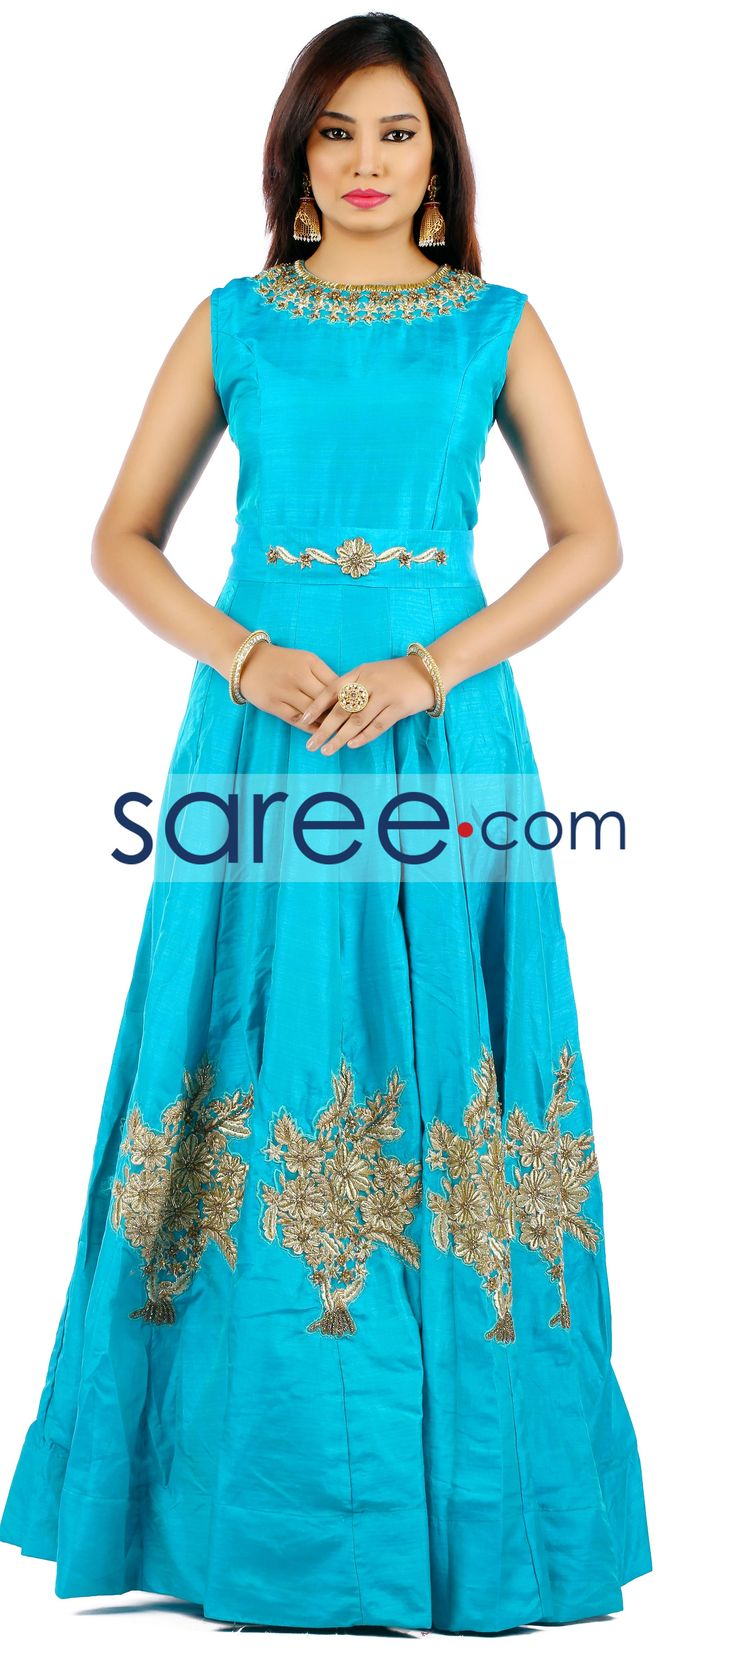 SEA GREEN SILK GOWN WITH CUTDANA WORK   #Gown #PartywearGown #ReceptionGown #IndoWestern #IndoWesternGown